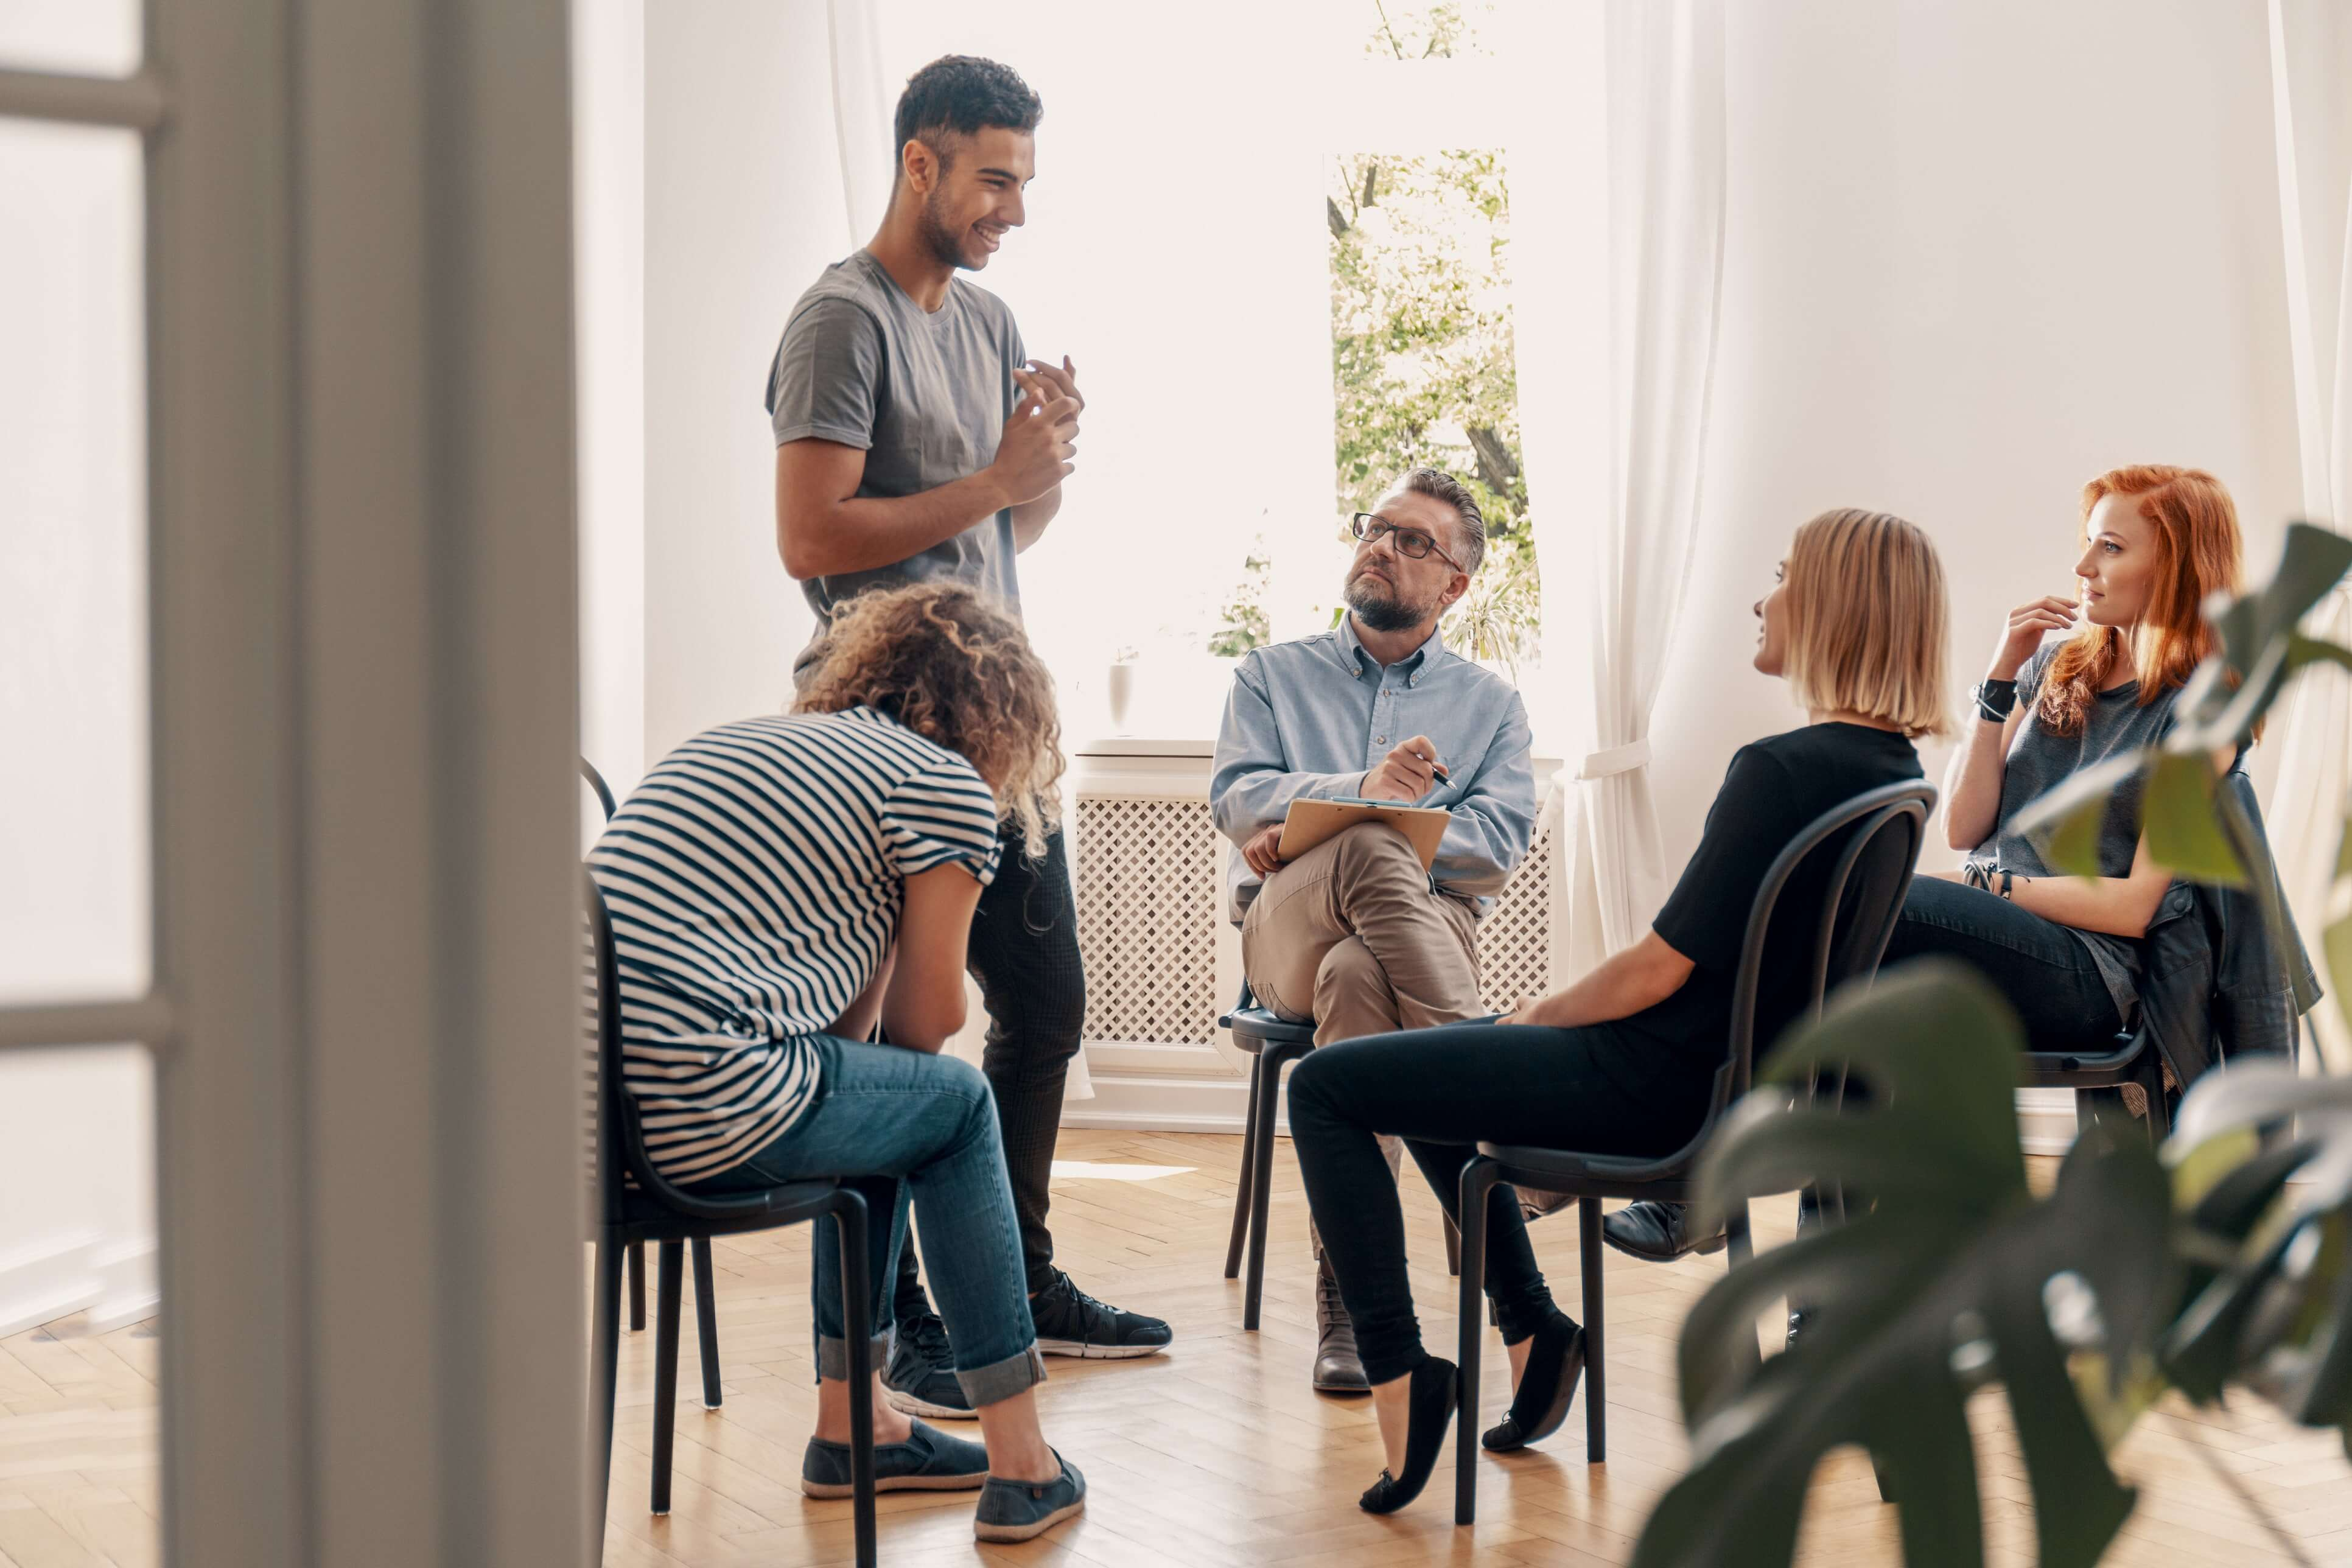 An Alcohol Therapy Group Session